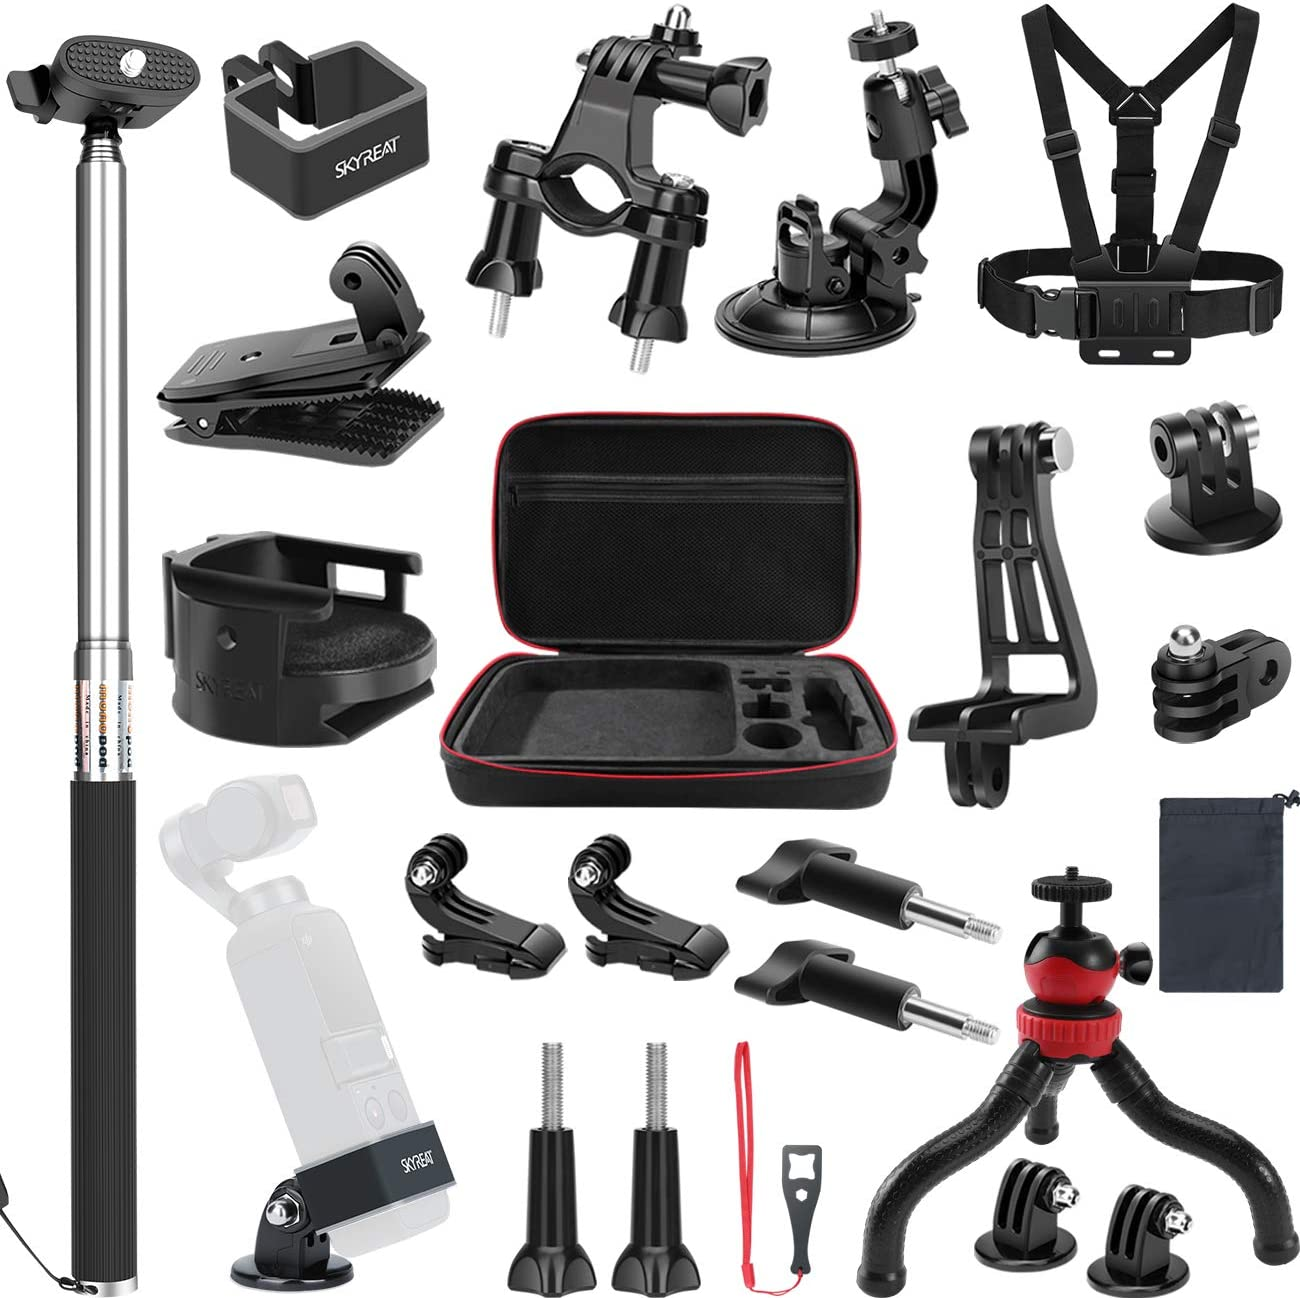 25 PCS Skyreat Expansion Accessories Kit for DJI Osmo Pocket Includes Carrying Case Backpack Strap Selfie Stick Tripod Holder for Osmo Pocket